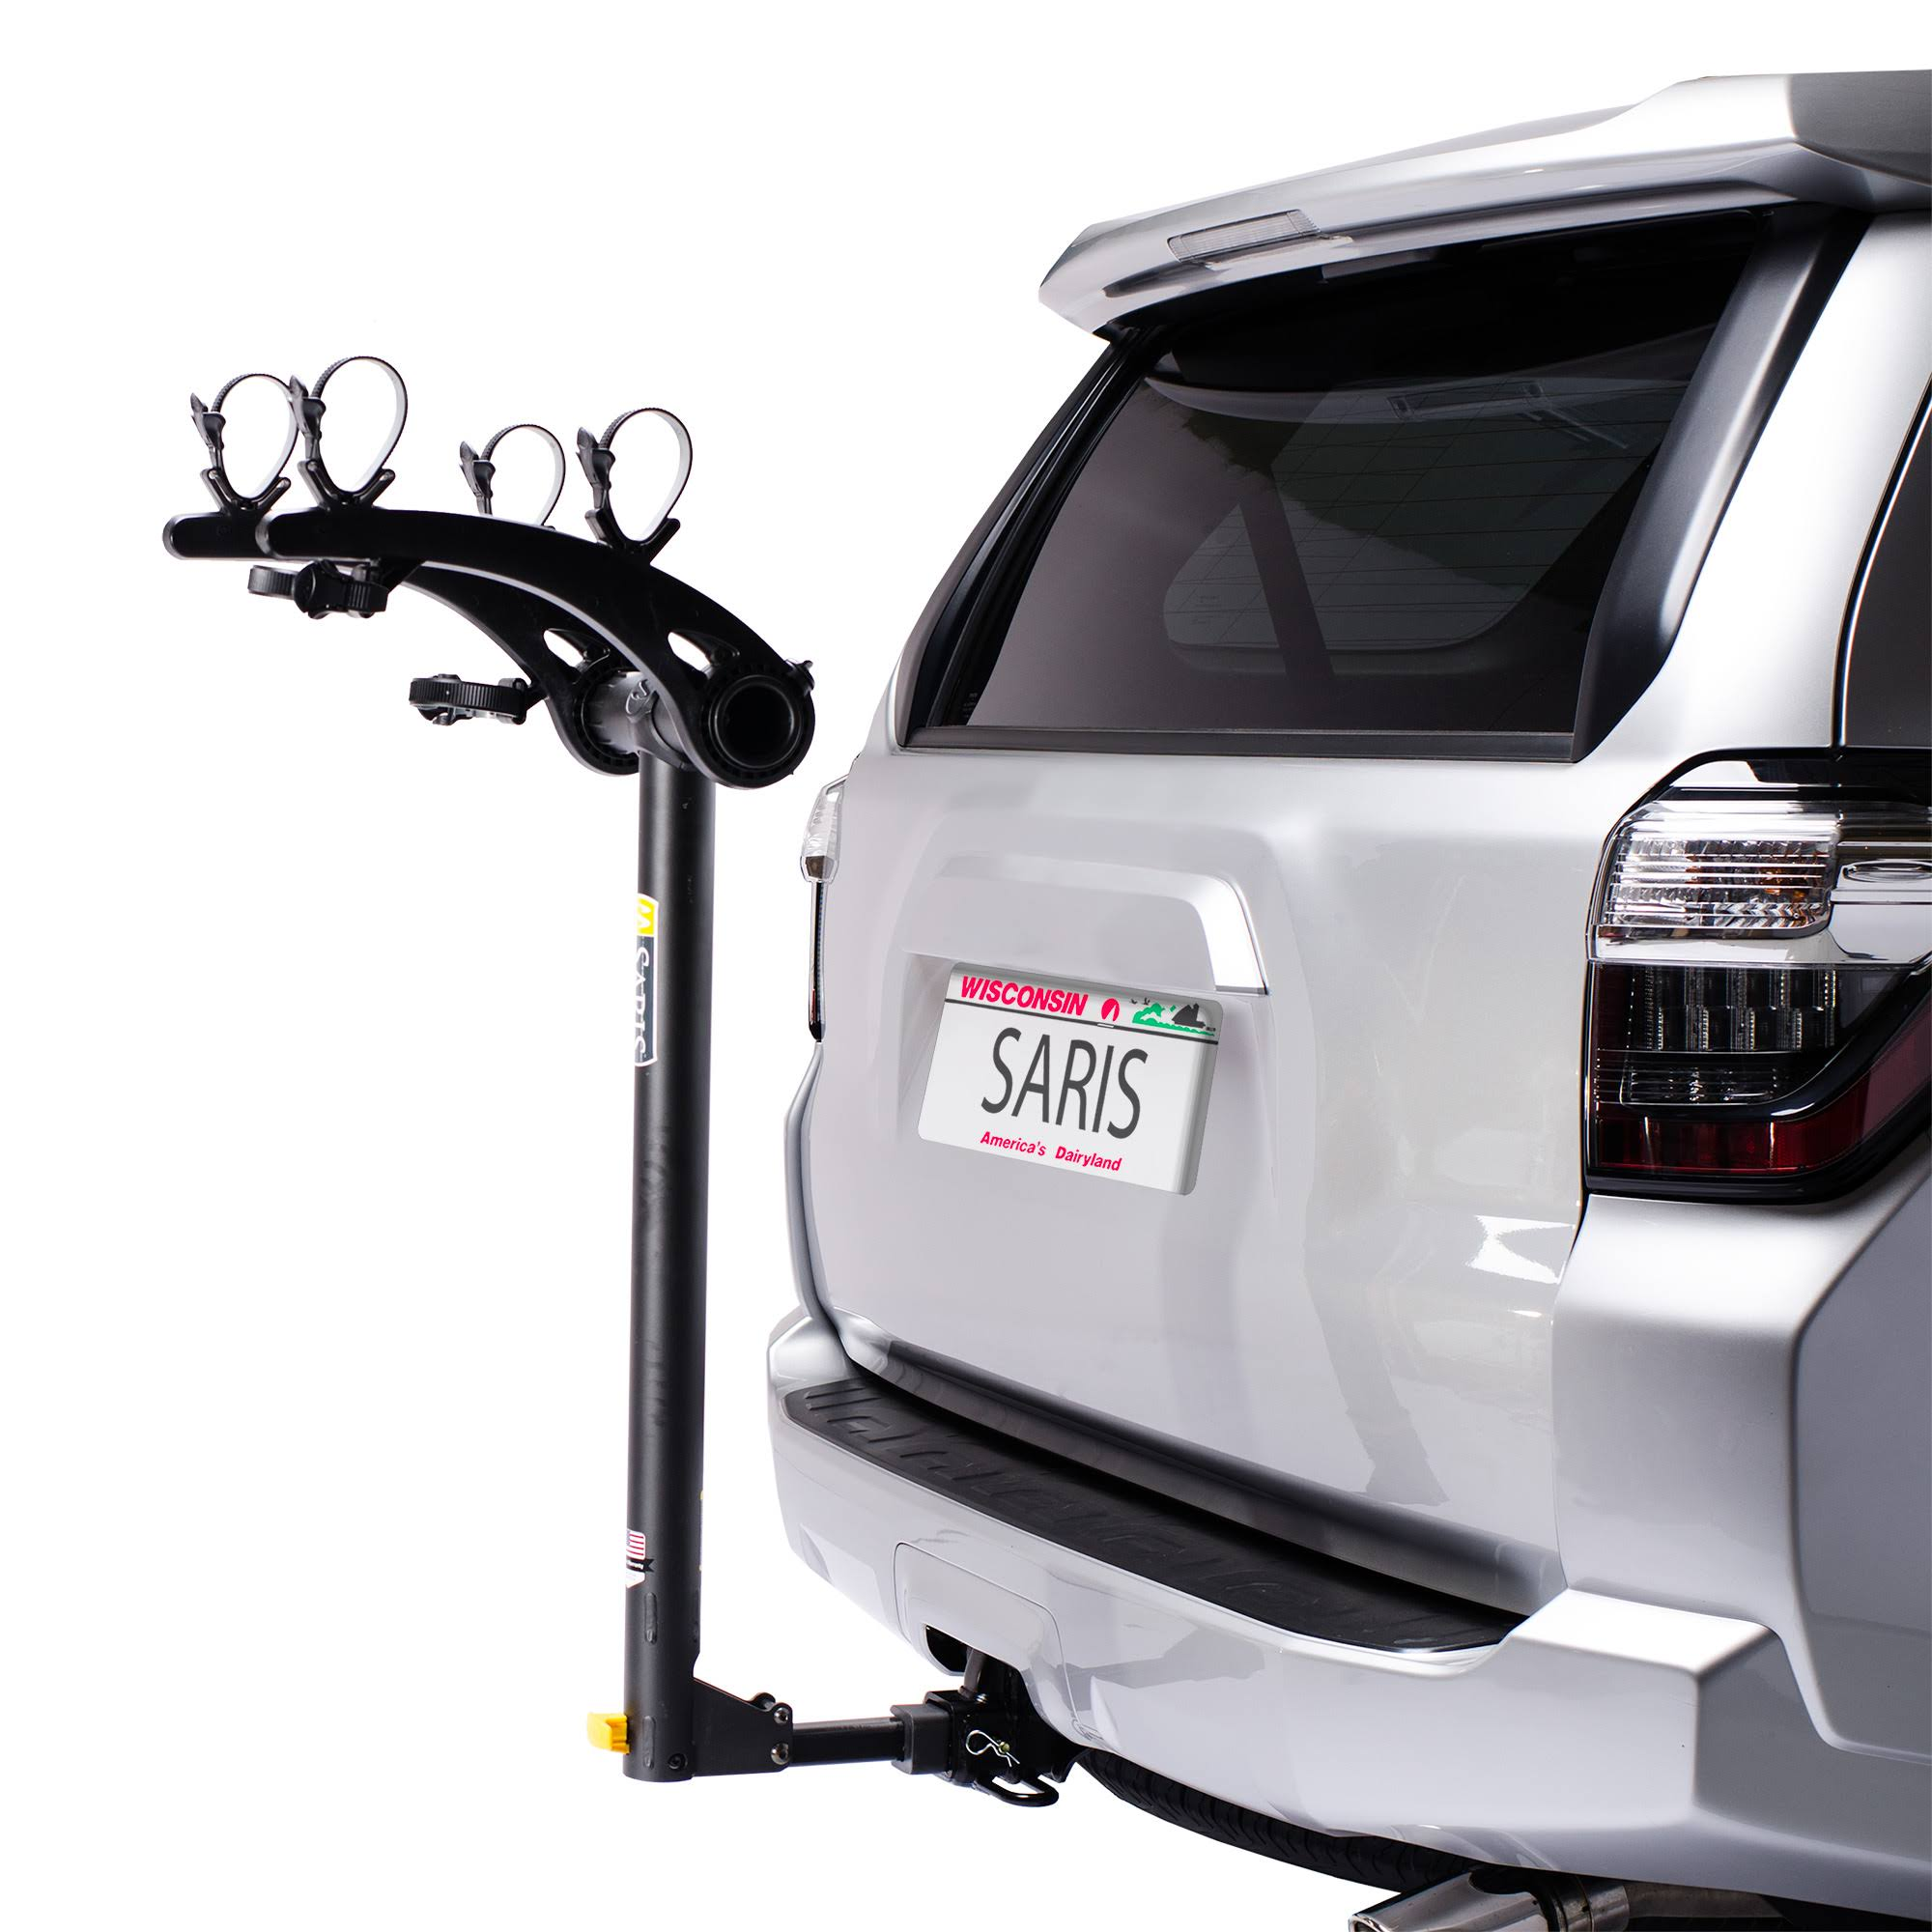 Saris Bones Hitch Mount 2 Bike Car Rack - Black